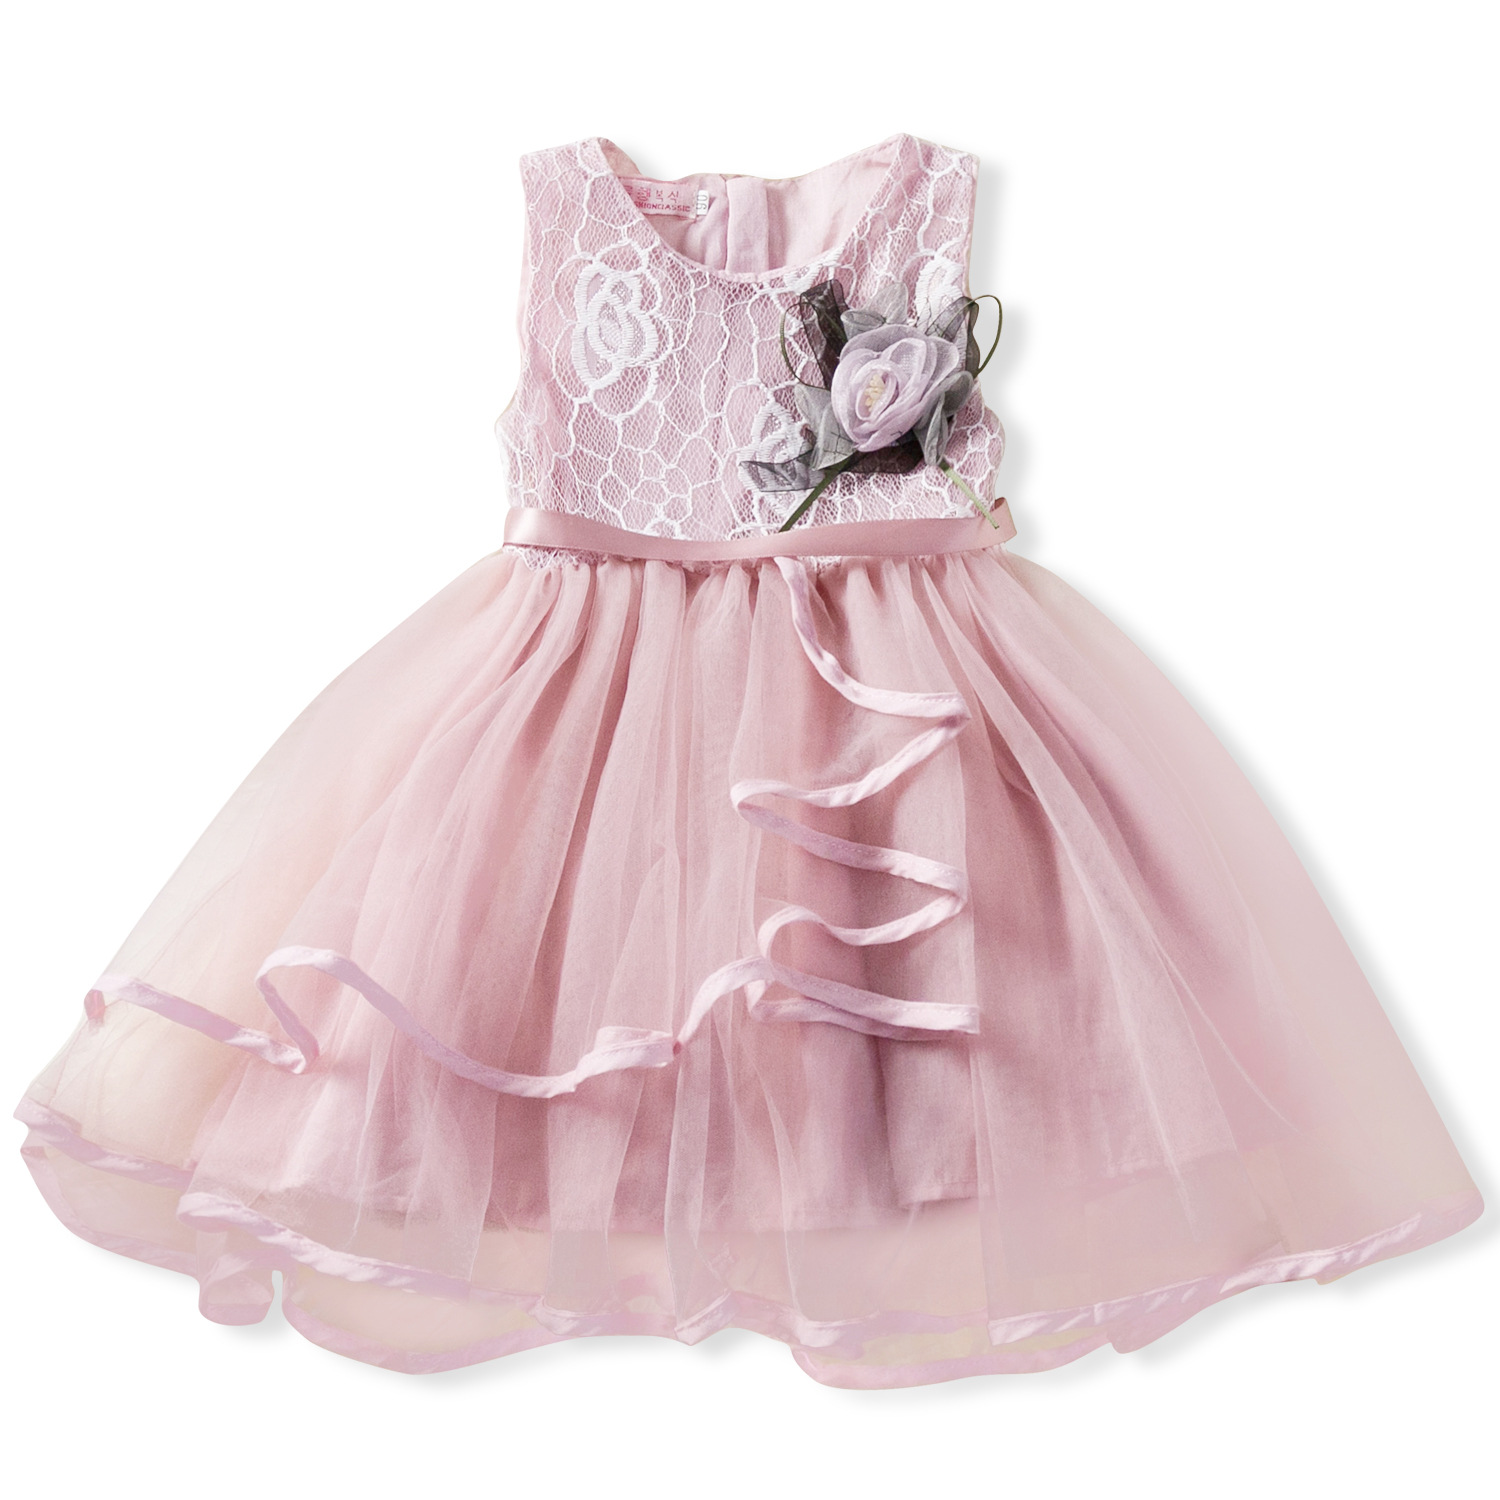 Careful Lace Little Princess Dresses Summer Solid Sleeveless Tulle Tutu Dresses For Girls 2 3 4 5 6 Years Clothes Party Pageant Vestidos